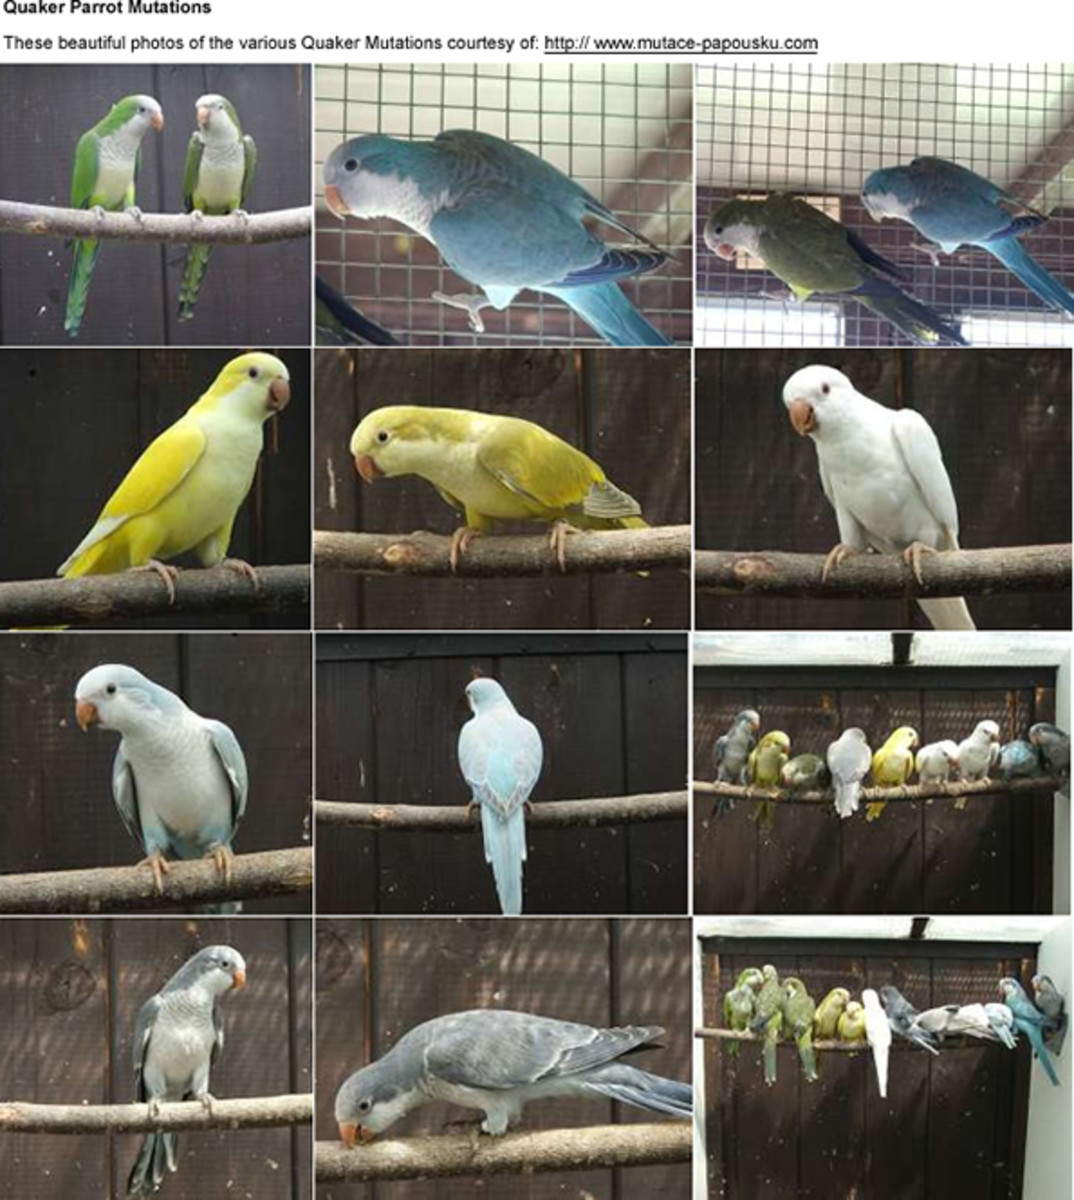 Quaker Parrot Care Sheet